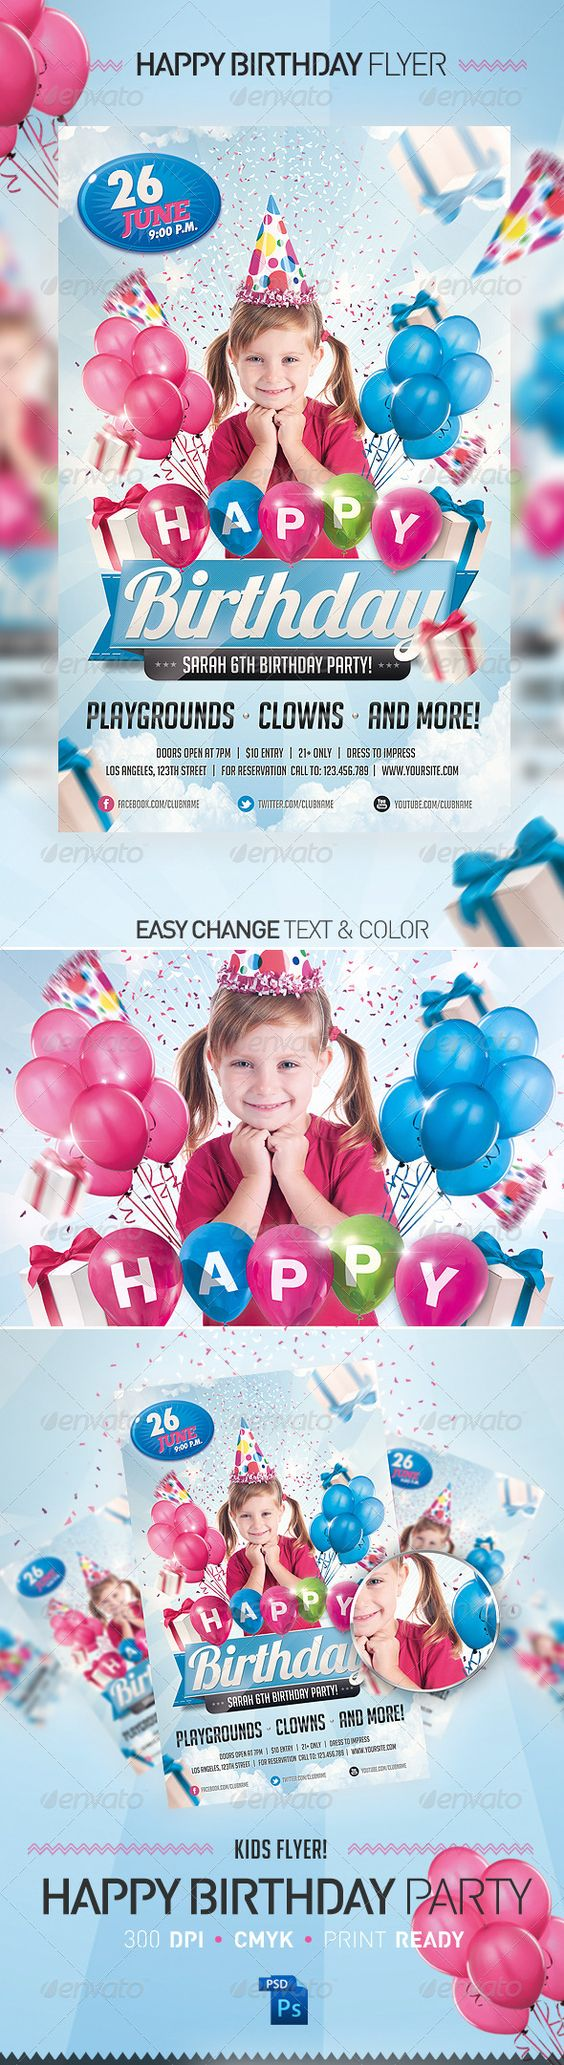 kids birthday invitation party flyer invitations kids kid and fonts kids birthday invitation party flyer psd template kids invitation ➝